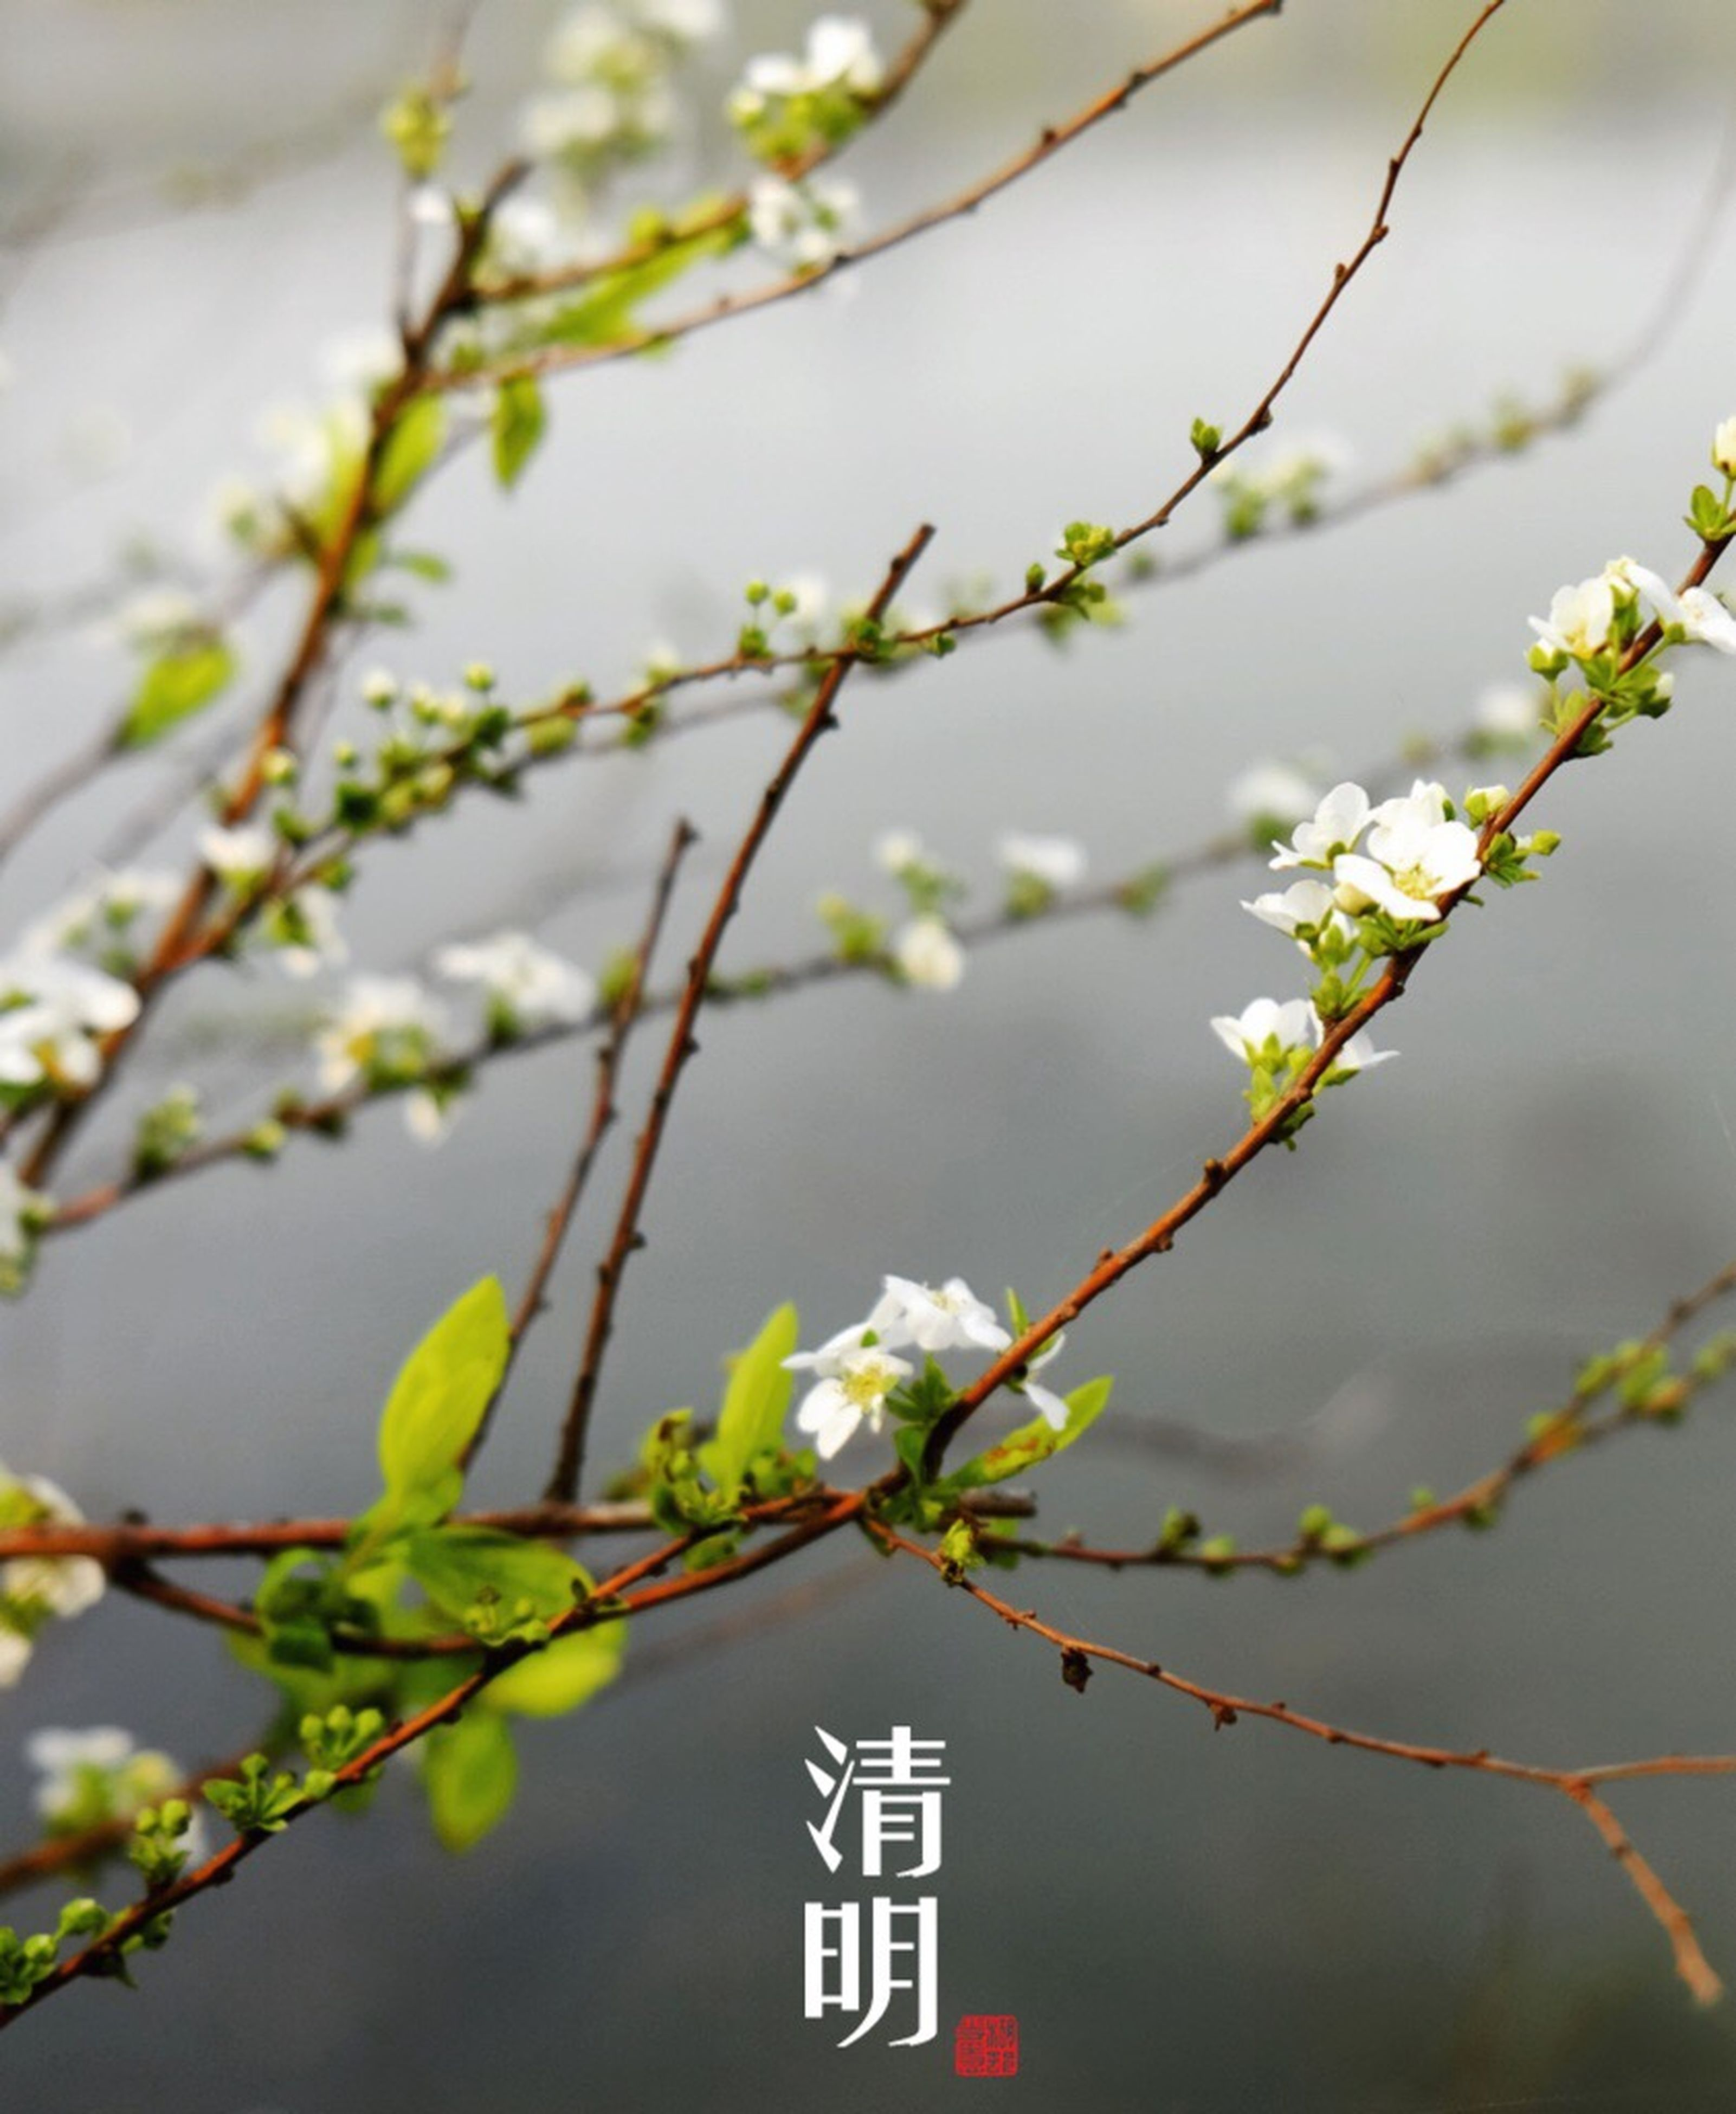 focus on foreground, text, branch, close-up, tree, communication, leaf, western script, growth, nature, day, plant, outdoors, no people, twig, low angle view, selective focus, white color, beauty in nature, sky